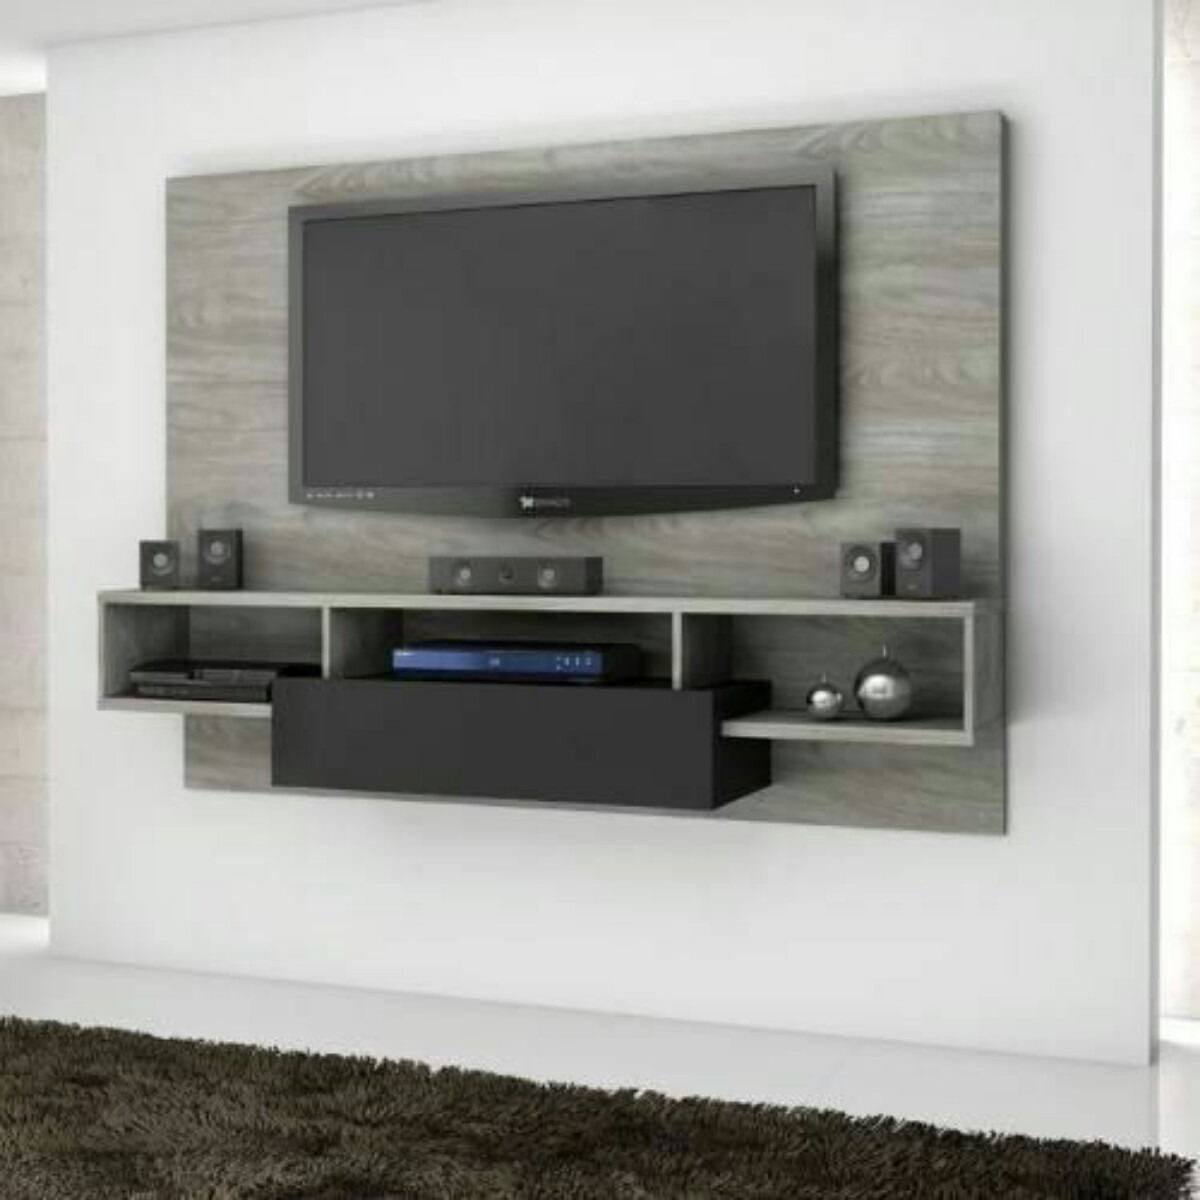 Muebles Para Tv - Muebles Tv Muebles Mercado Libre Ecuador[mjhdah]https://http2.mlstatic.com/mueble-flotante-para-tv-moderno-ref-manhatan-D_NQ_NP_690311-MCO20522664505_122015-F.jpg